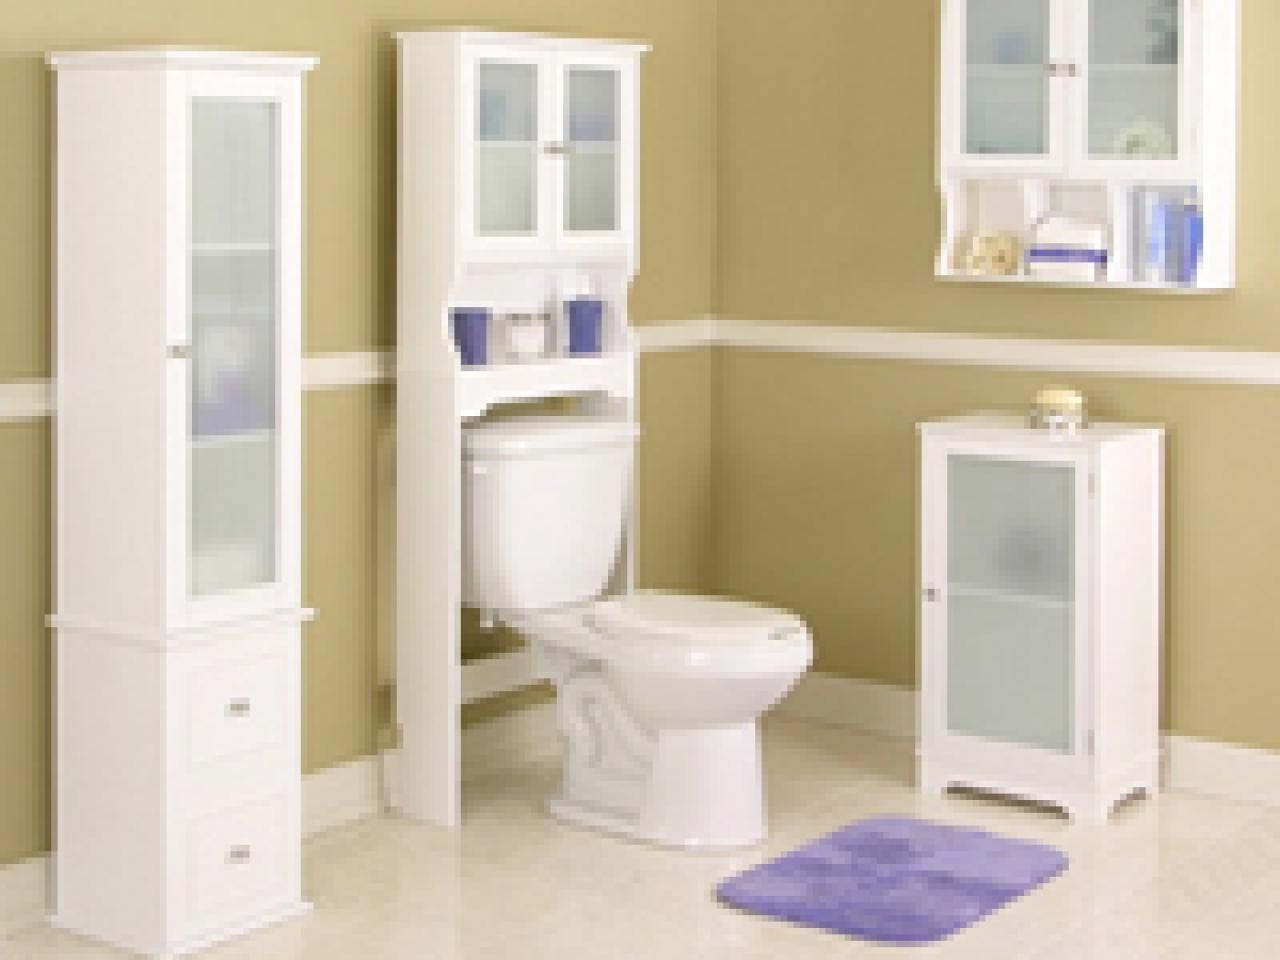 Planning A Bathroom Remodel Consider The Layout First: Low-Cost Tips For Reorganizing The Bathroom